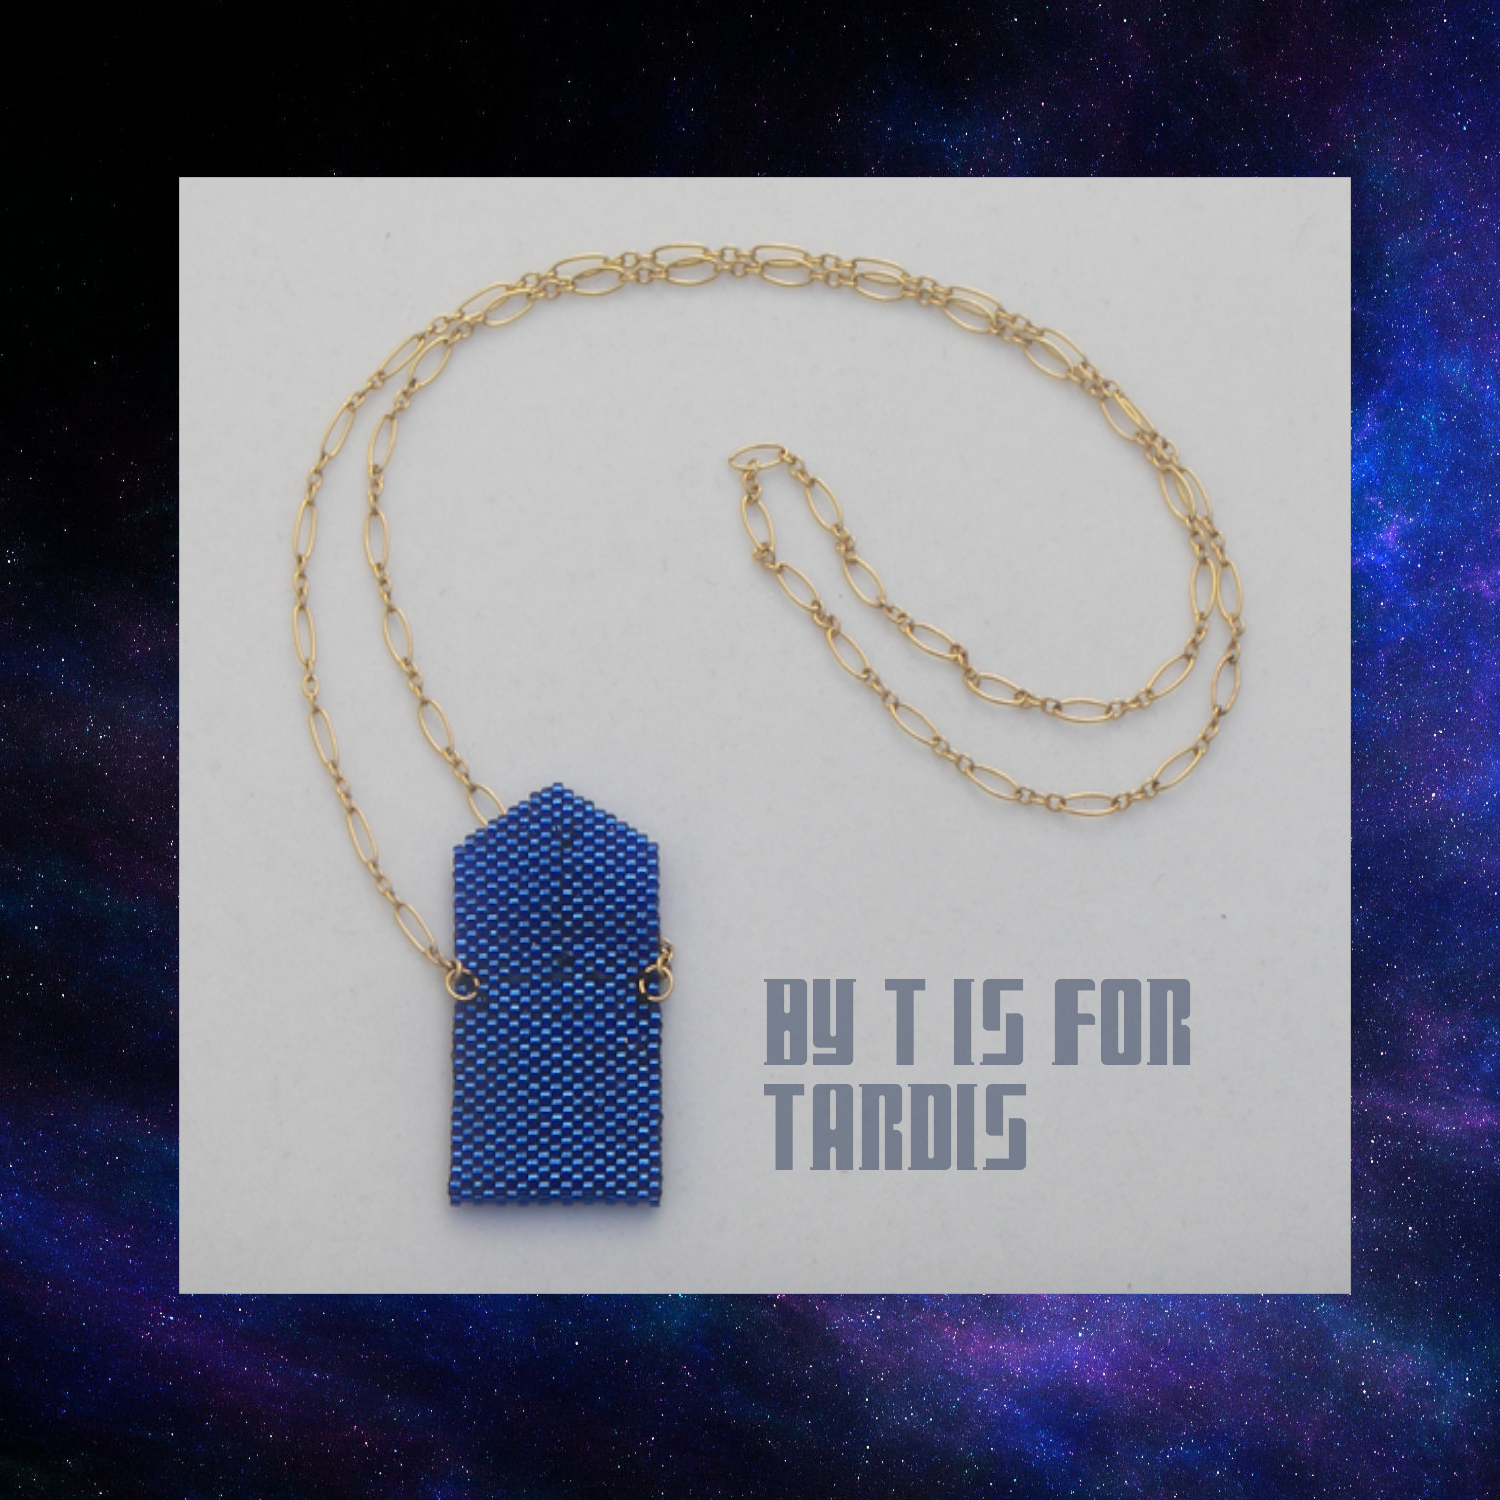 tardis envelope open on chain inside by KC Dragonfly